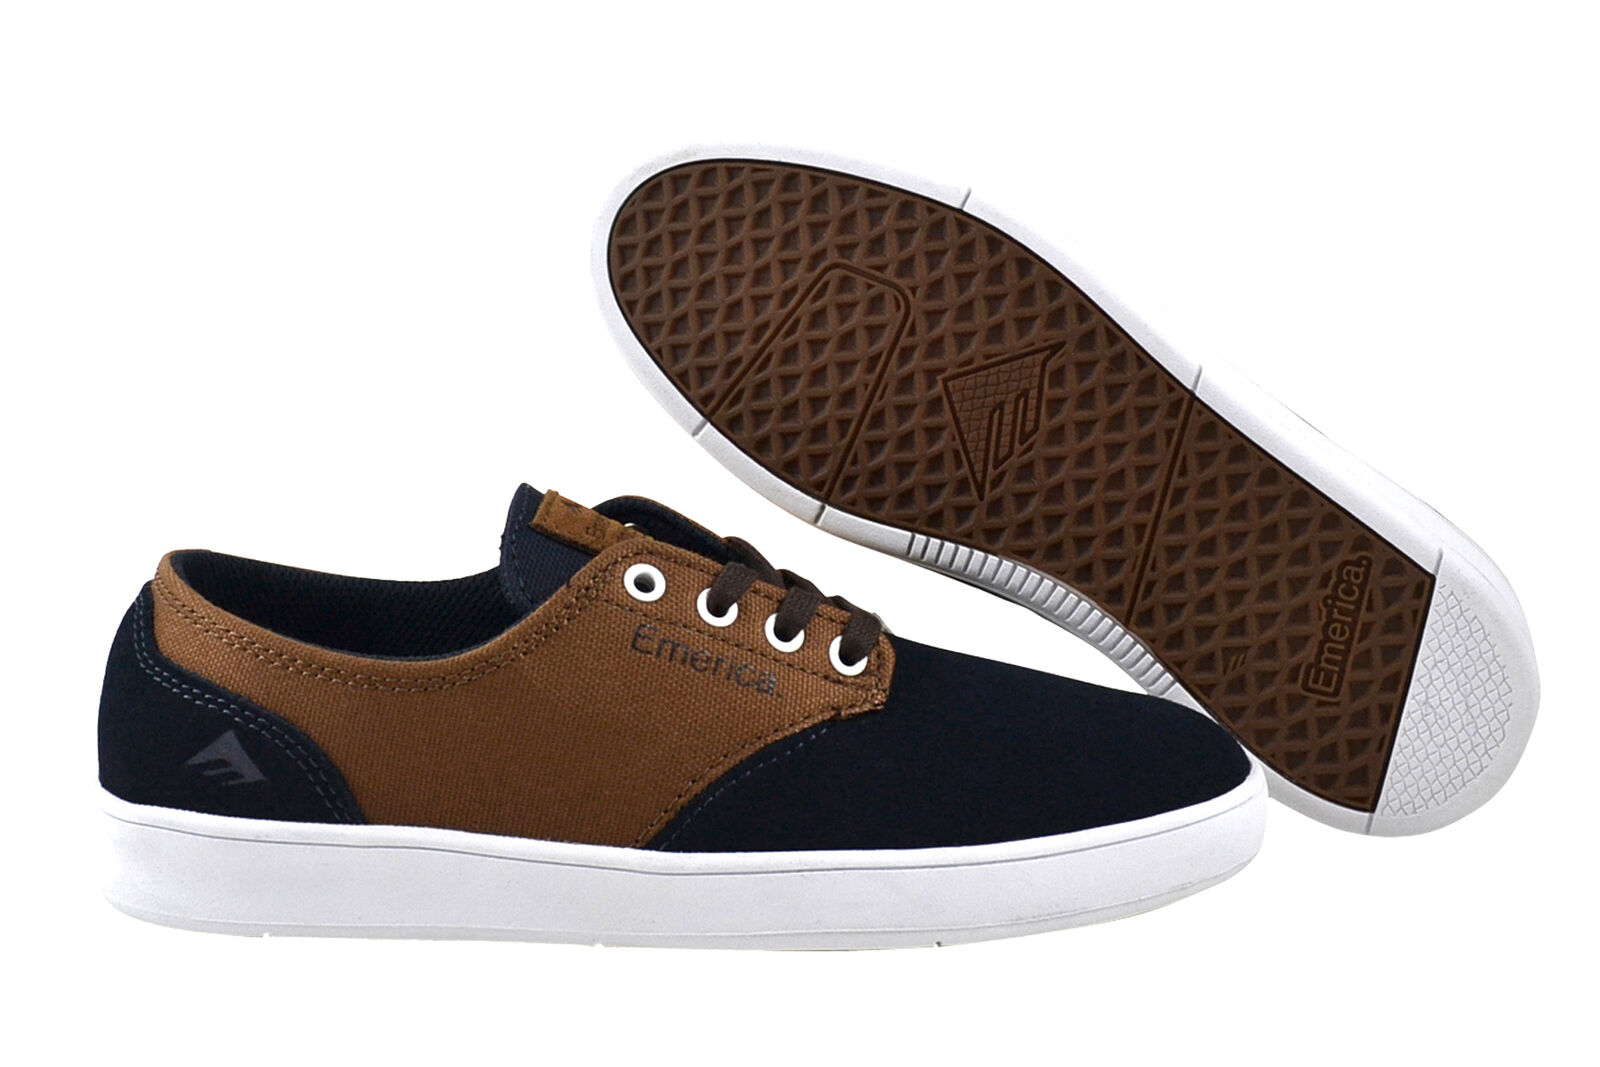 EMERICA The Romero laced Navy Brown White Sneaker Scarpe Navy Scarpe classiche da uomo